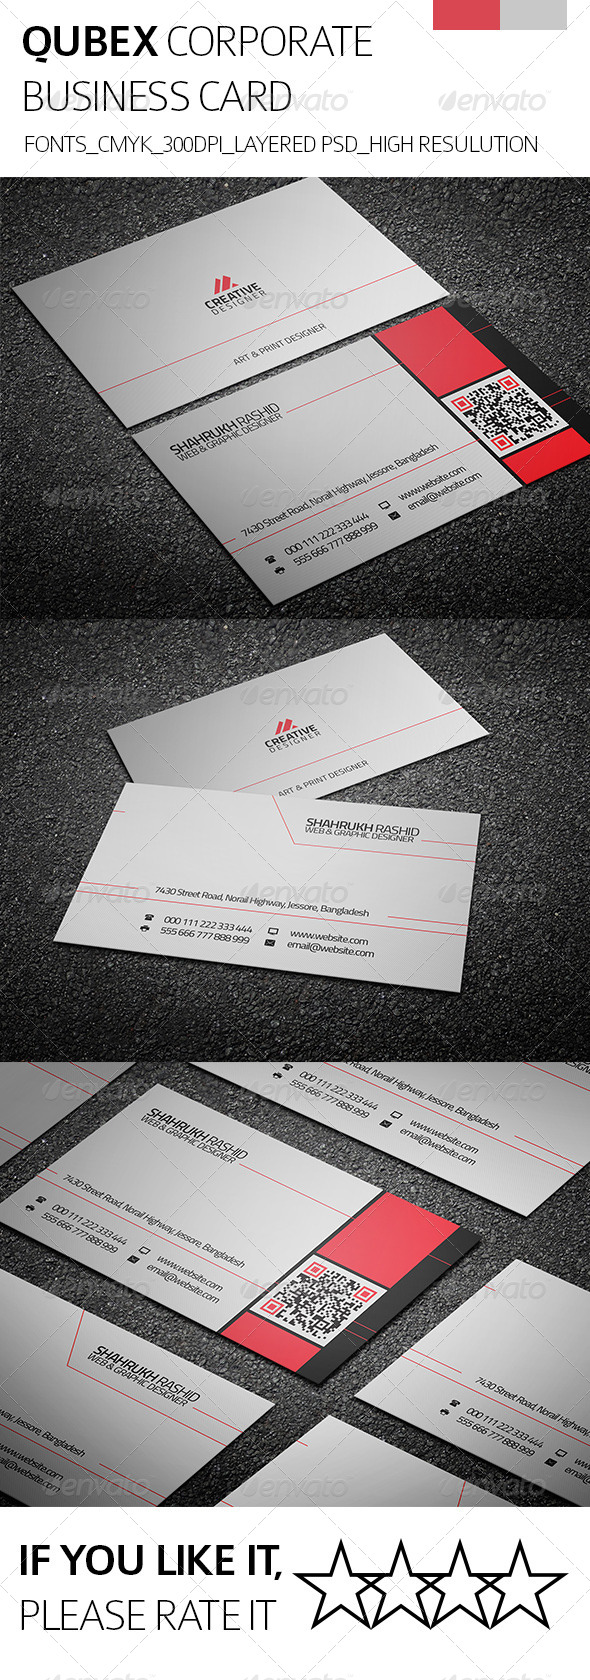 Qubex & Corporate Business Card - Corporate Business Cards